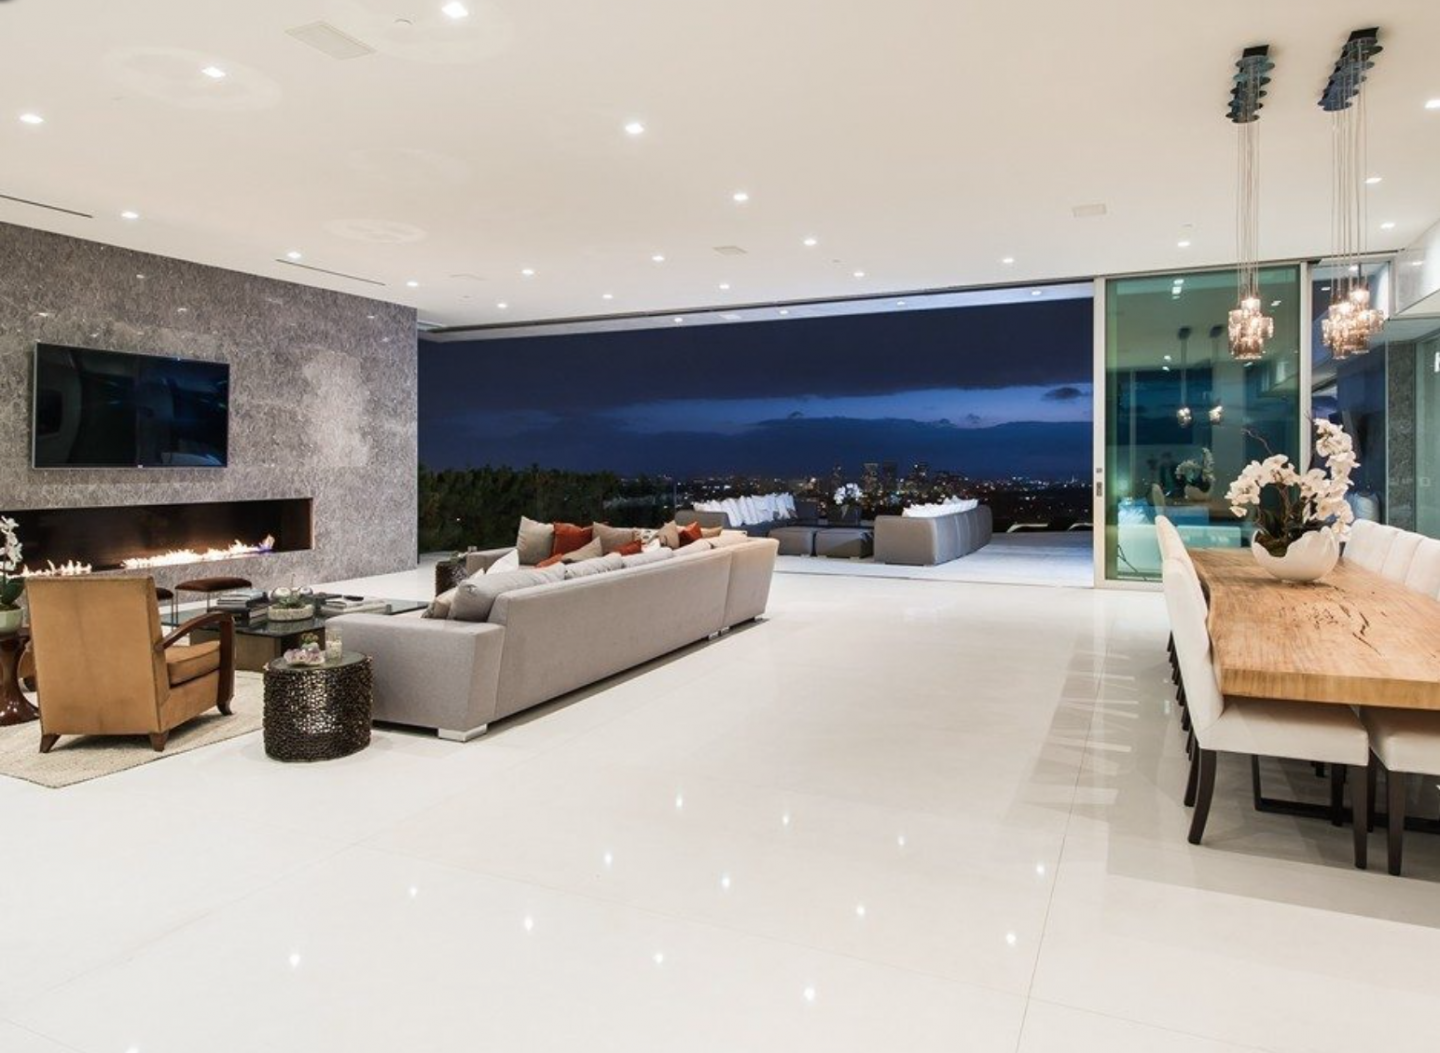 The 8,000-square-foot space opens up to an outdoor terrace.